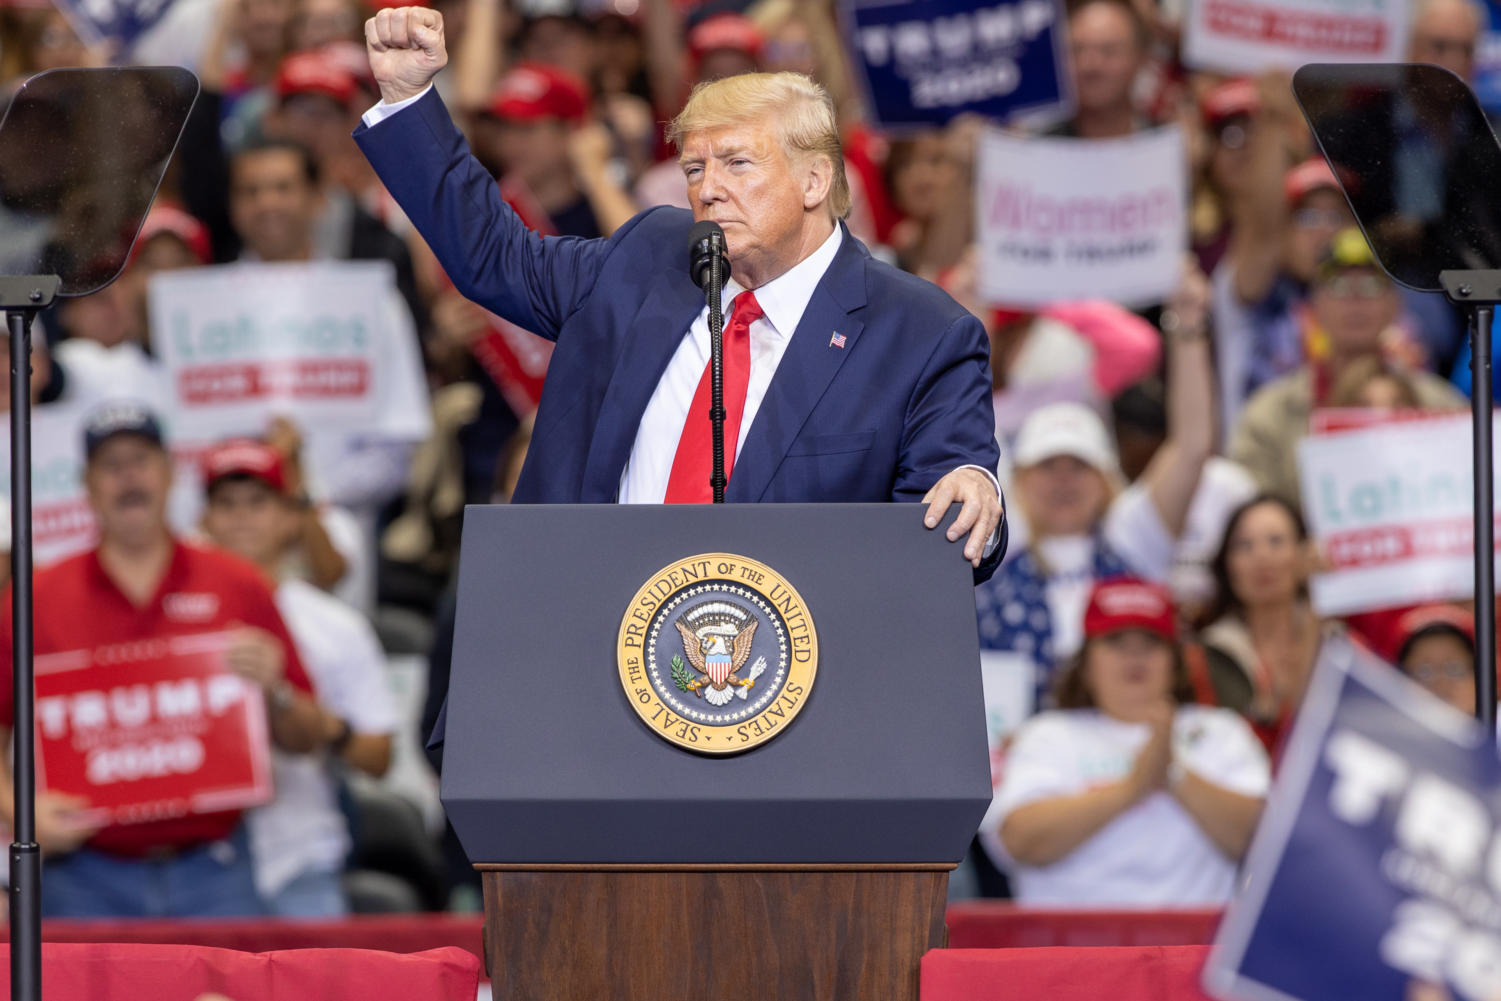 President Trump speaks at his rally at the American Airlines center on Oct. 17, 2019. (Andrew Fritz/ The Talon News)